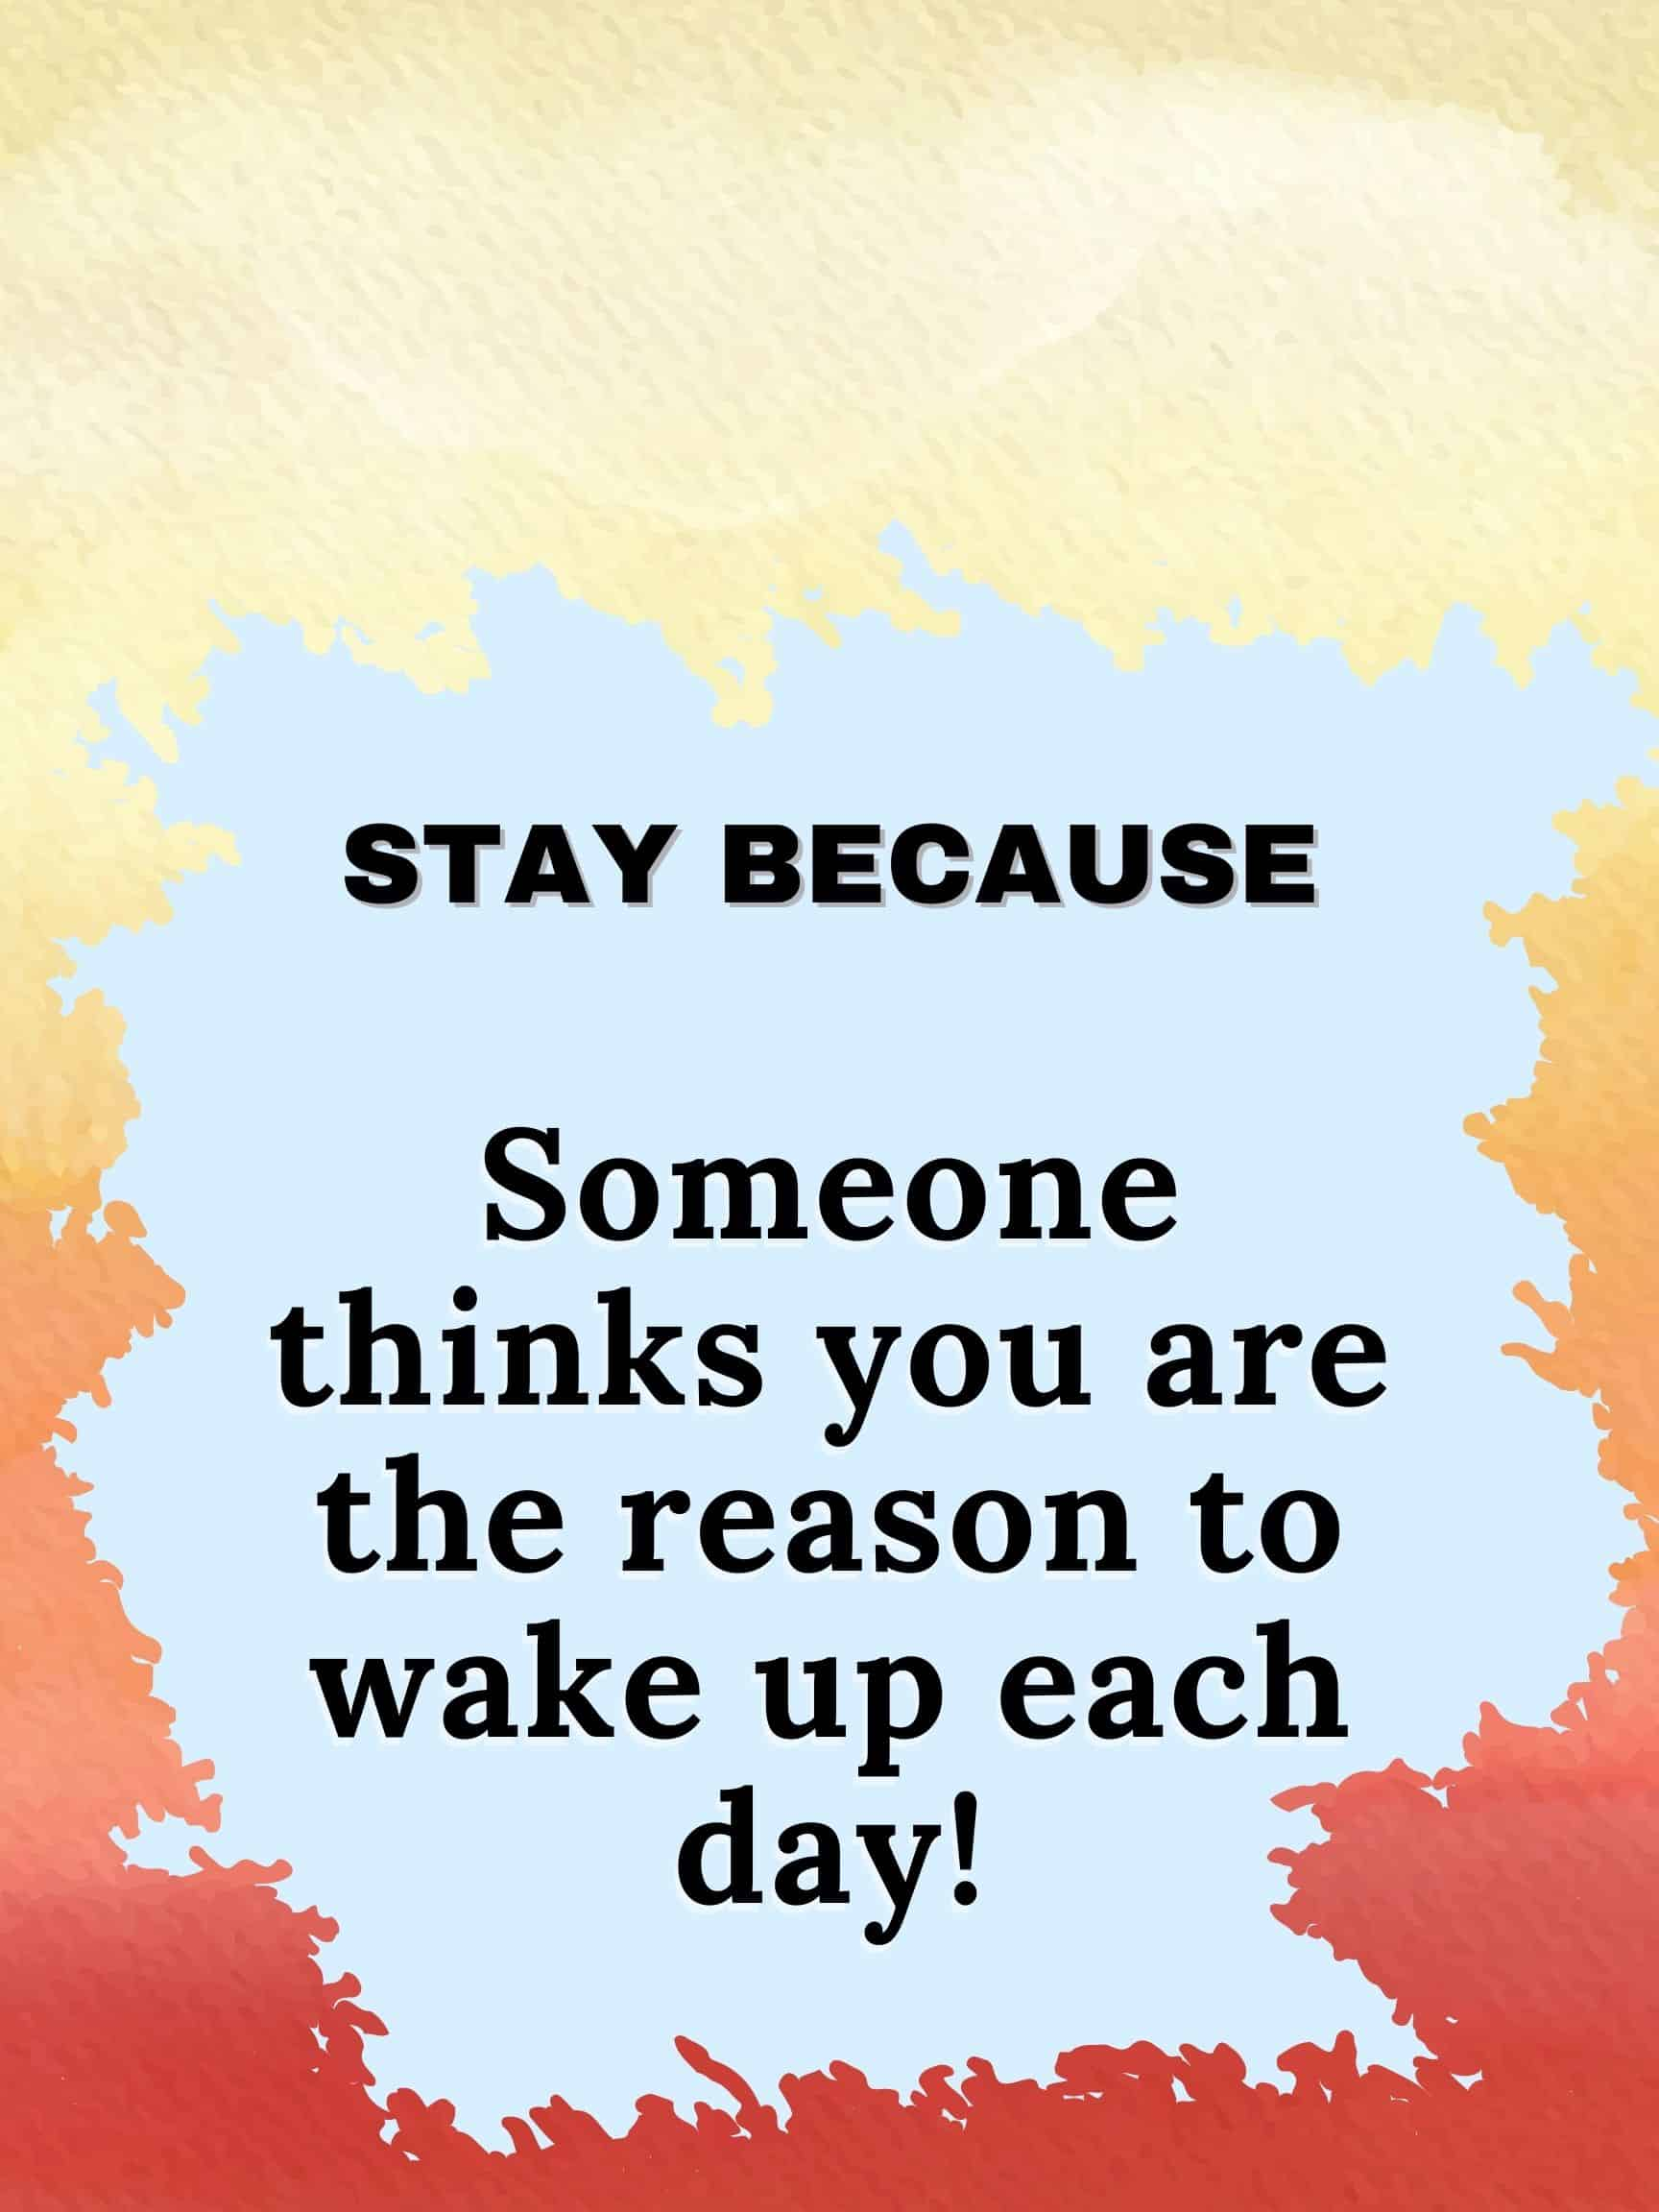 Stay because someone thinks you are the reason to wake up each day. #staybecause